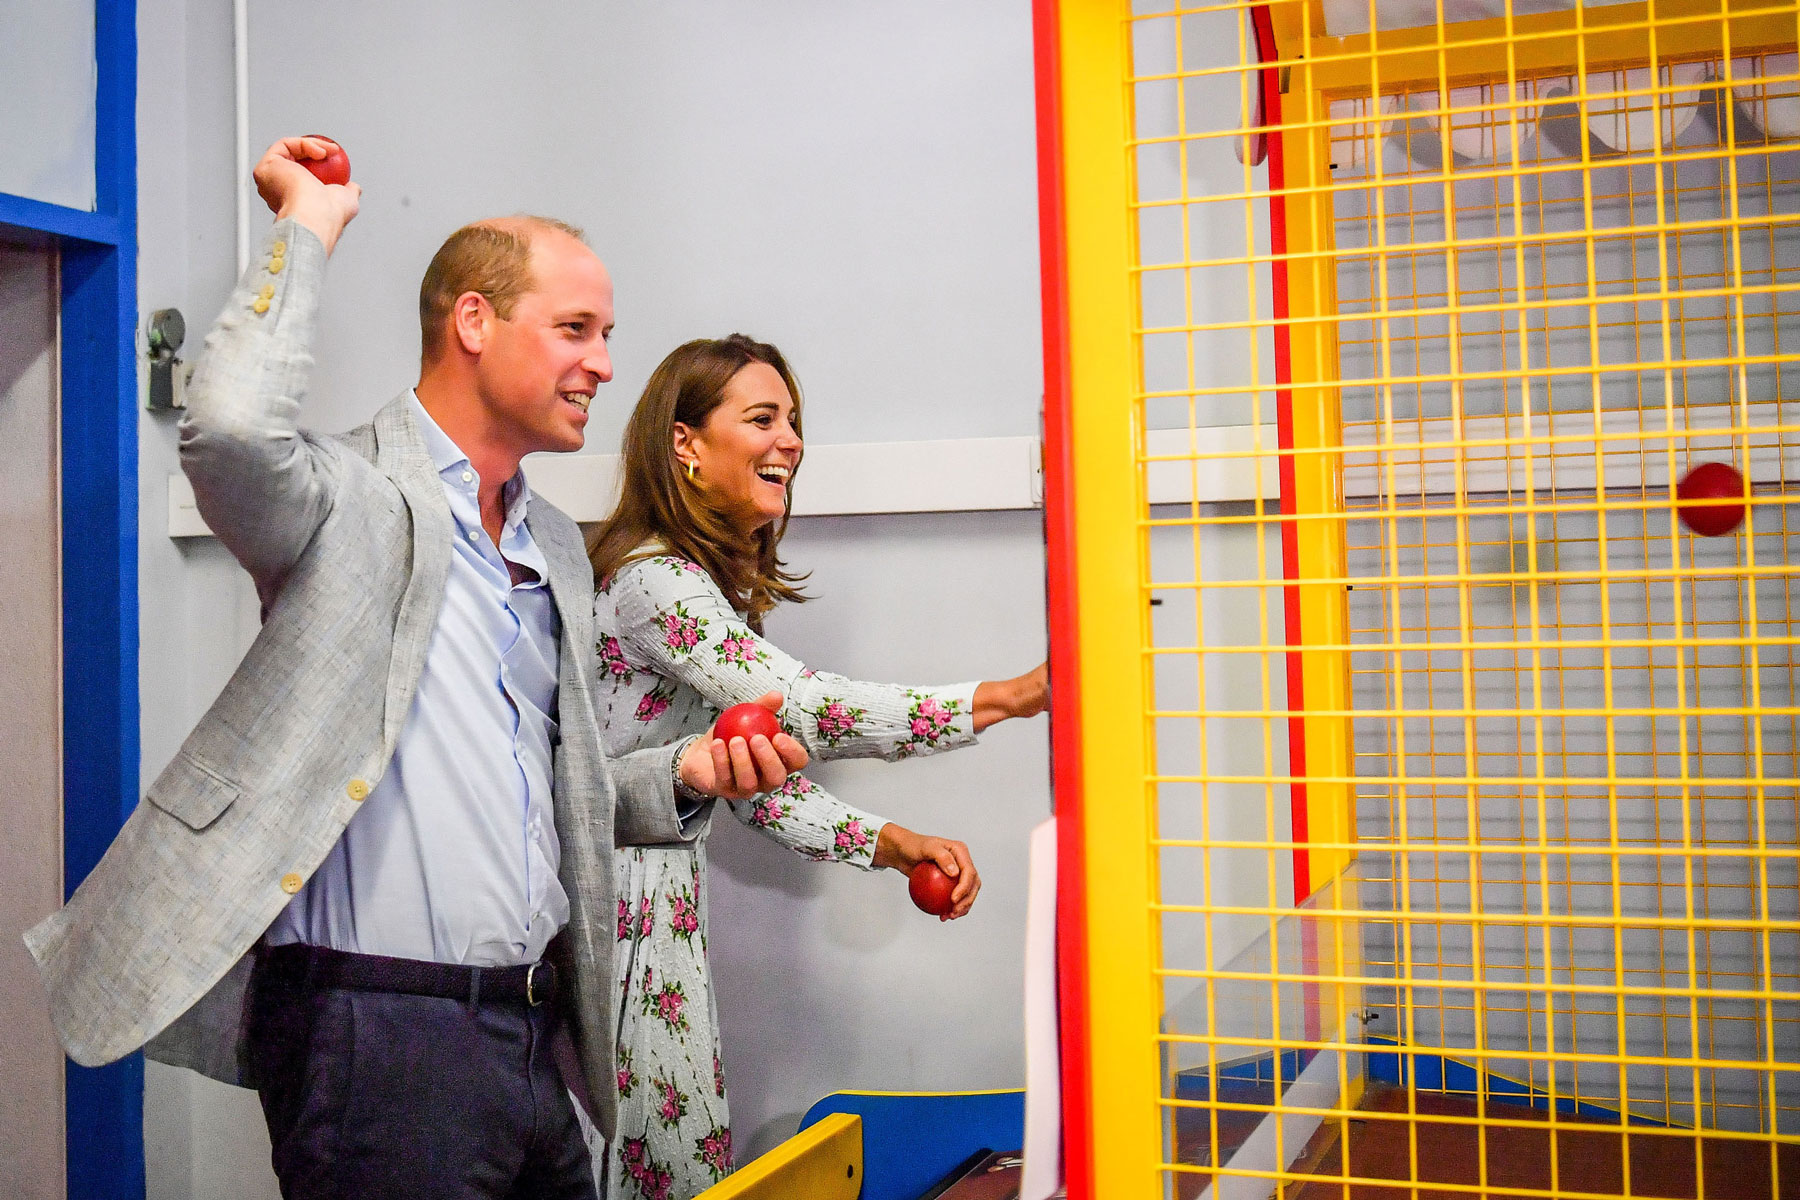 Prince William and Kate Middleton throw balls while playing an arcade game